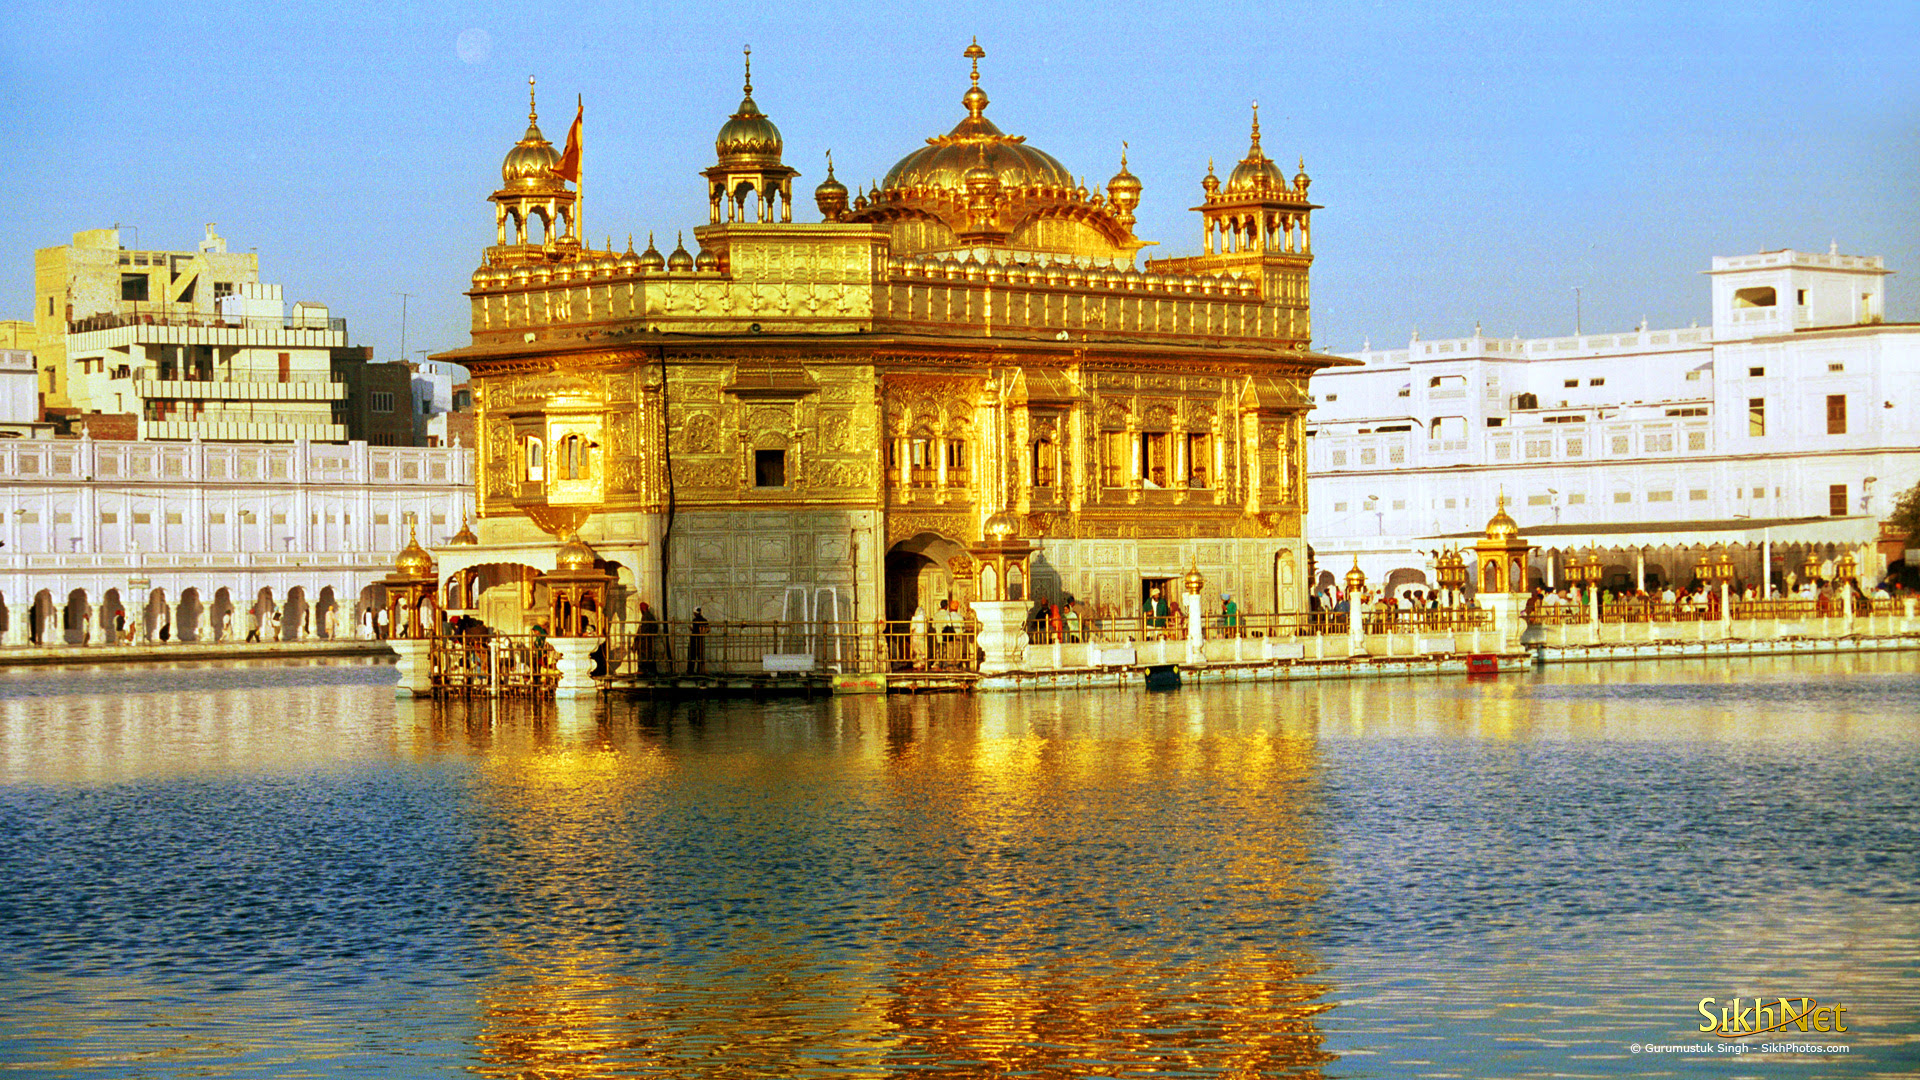 15 amazing golden temple images amritsar show my trips - Golden temple images hd download ...